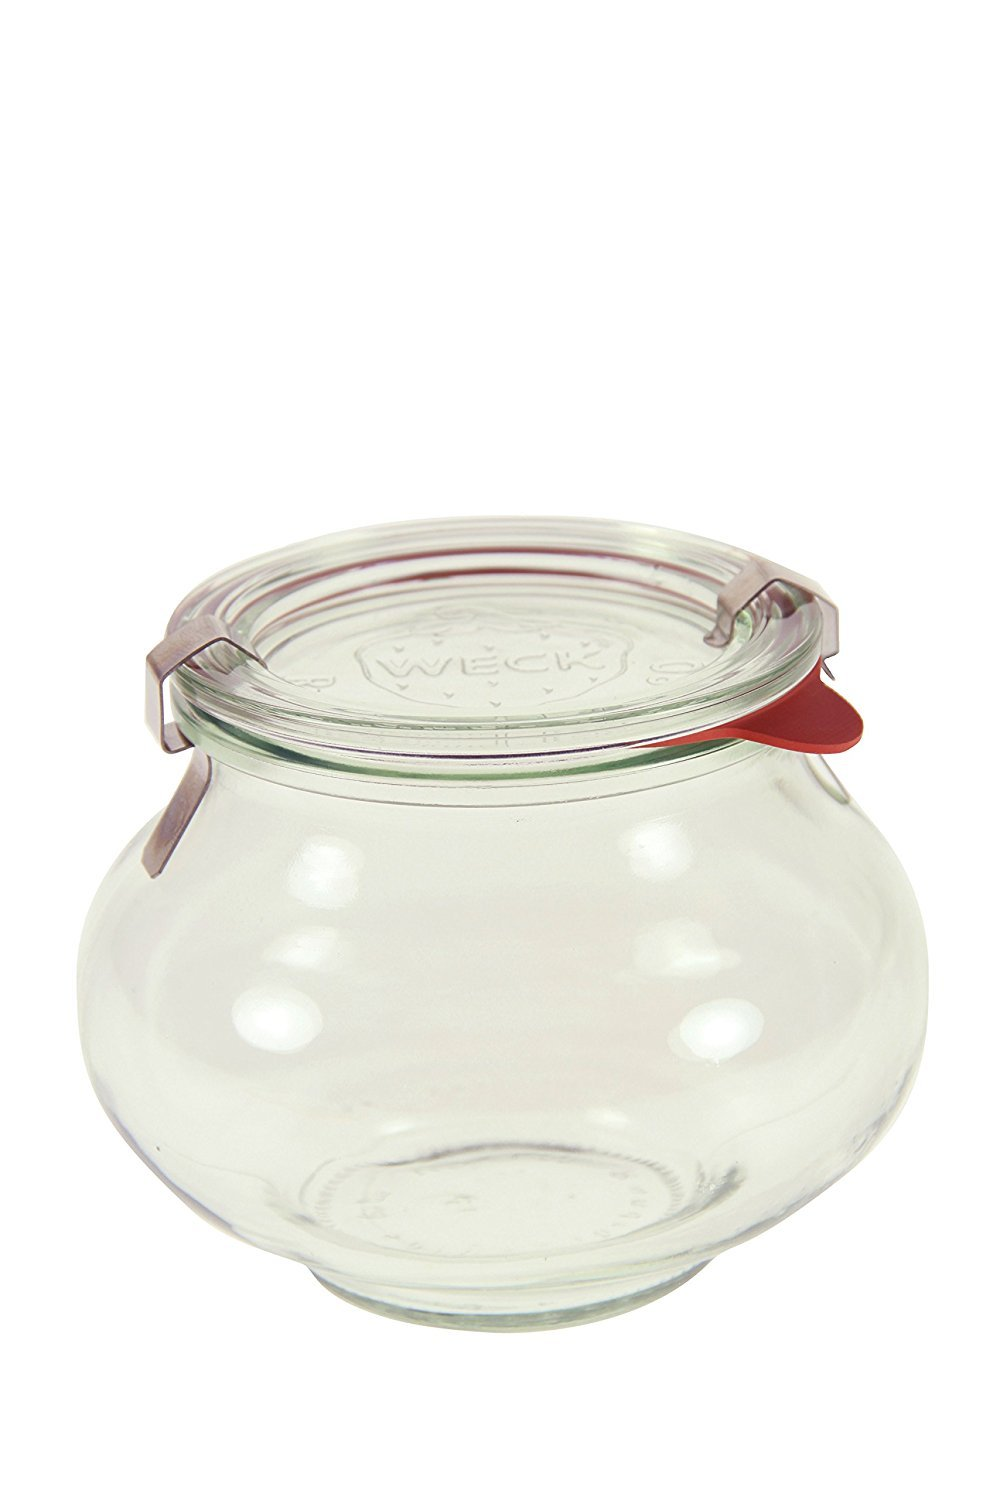 Weck 901 Deco Jar - .5 Liter, Set of 6